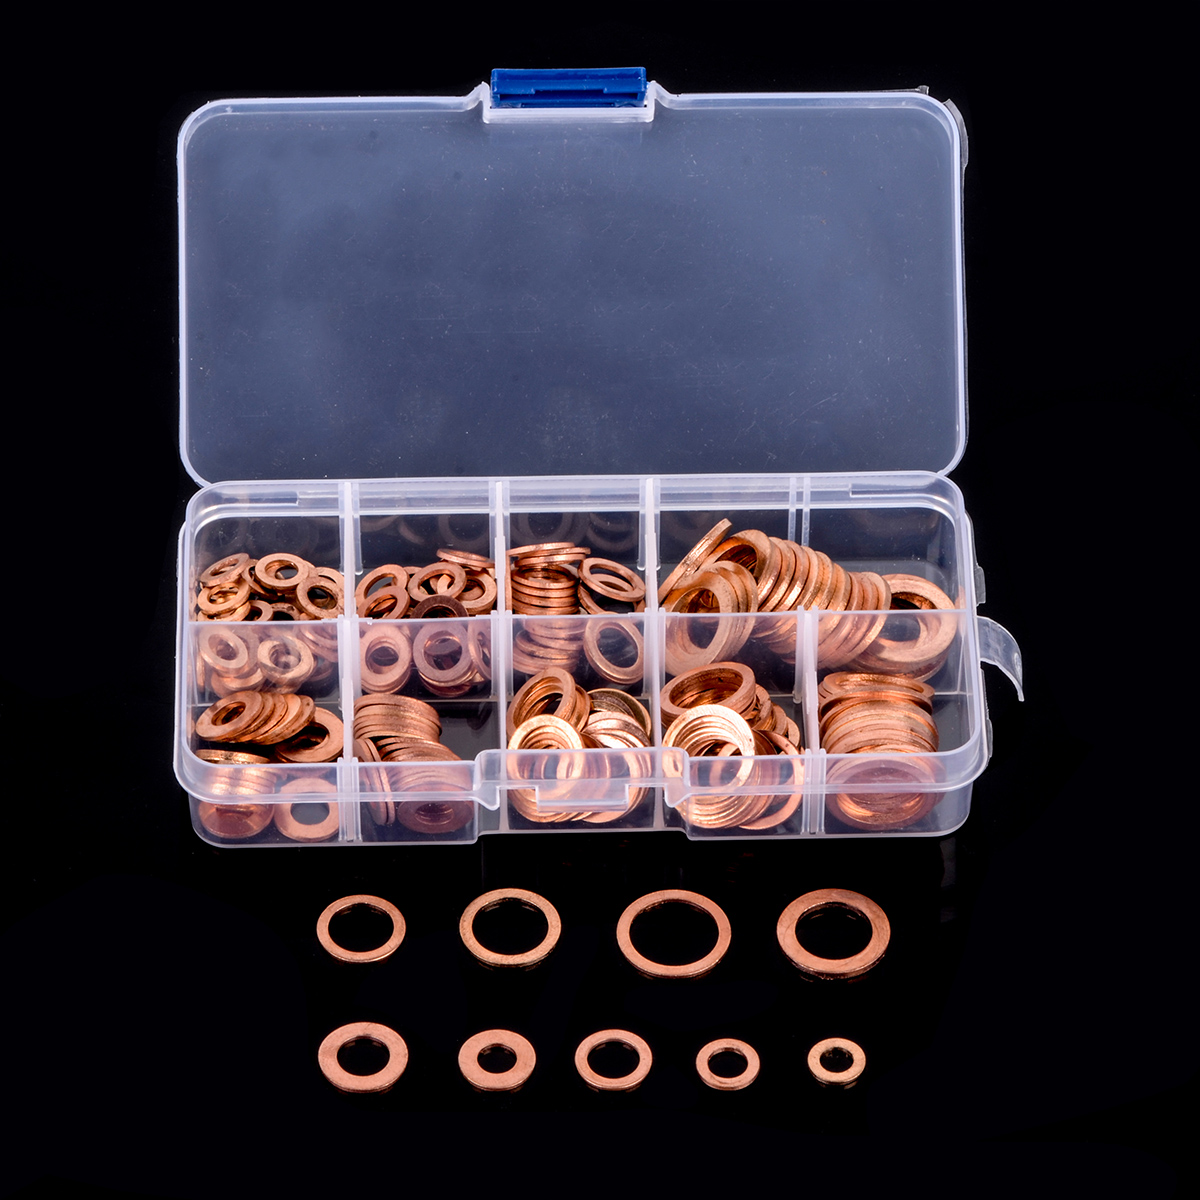 200pcs 9 Sizes Copper Washer Flat Ring Gasket Set Flat Ring Seal Assortment Kit with Box M5-M14 Fastener Hardware Accessories200pcs 9 Sizes Copper Washer Flat Ring Gasket Set Flat Ring Seal Assortment Kit with Box M5-M14 Fastener Hardware Accessories